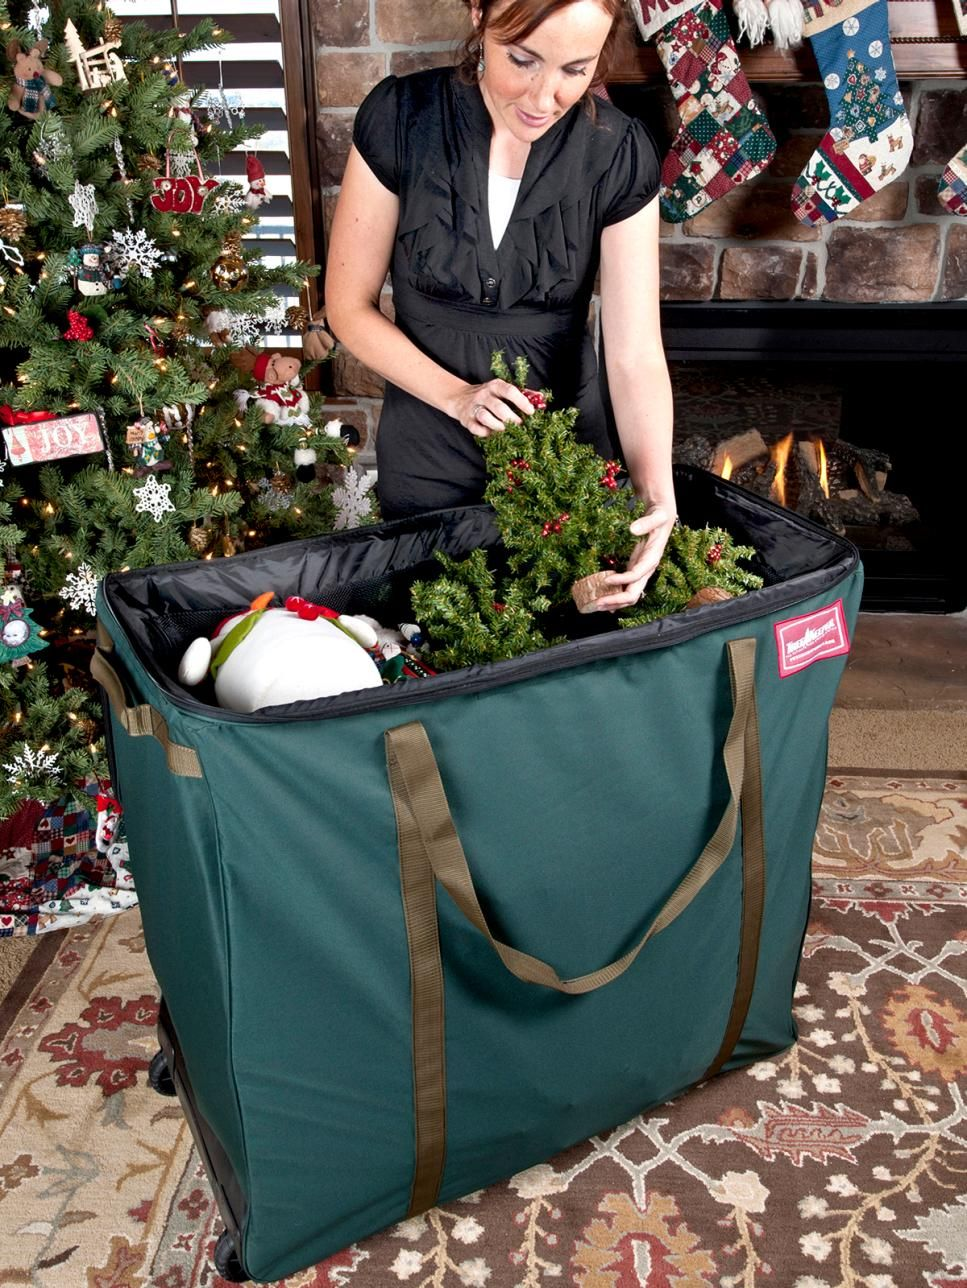 Tips Tricks And Gadgets For Storing Christmas Decorations Storing Christmas Decorations Christmas Decoration Items Large Christmas Decorations